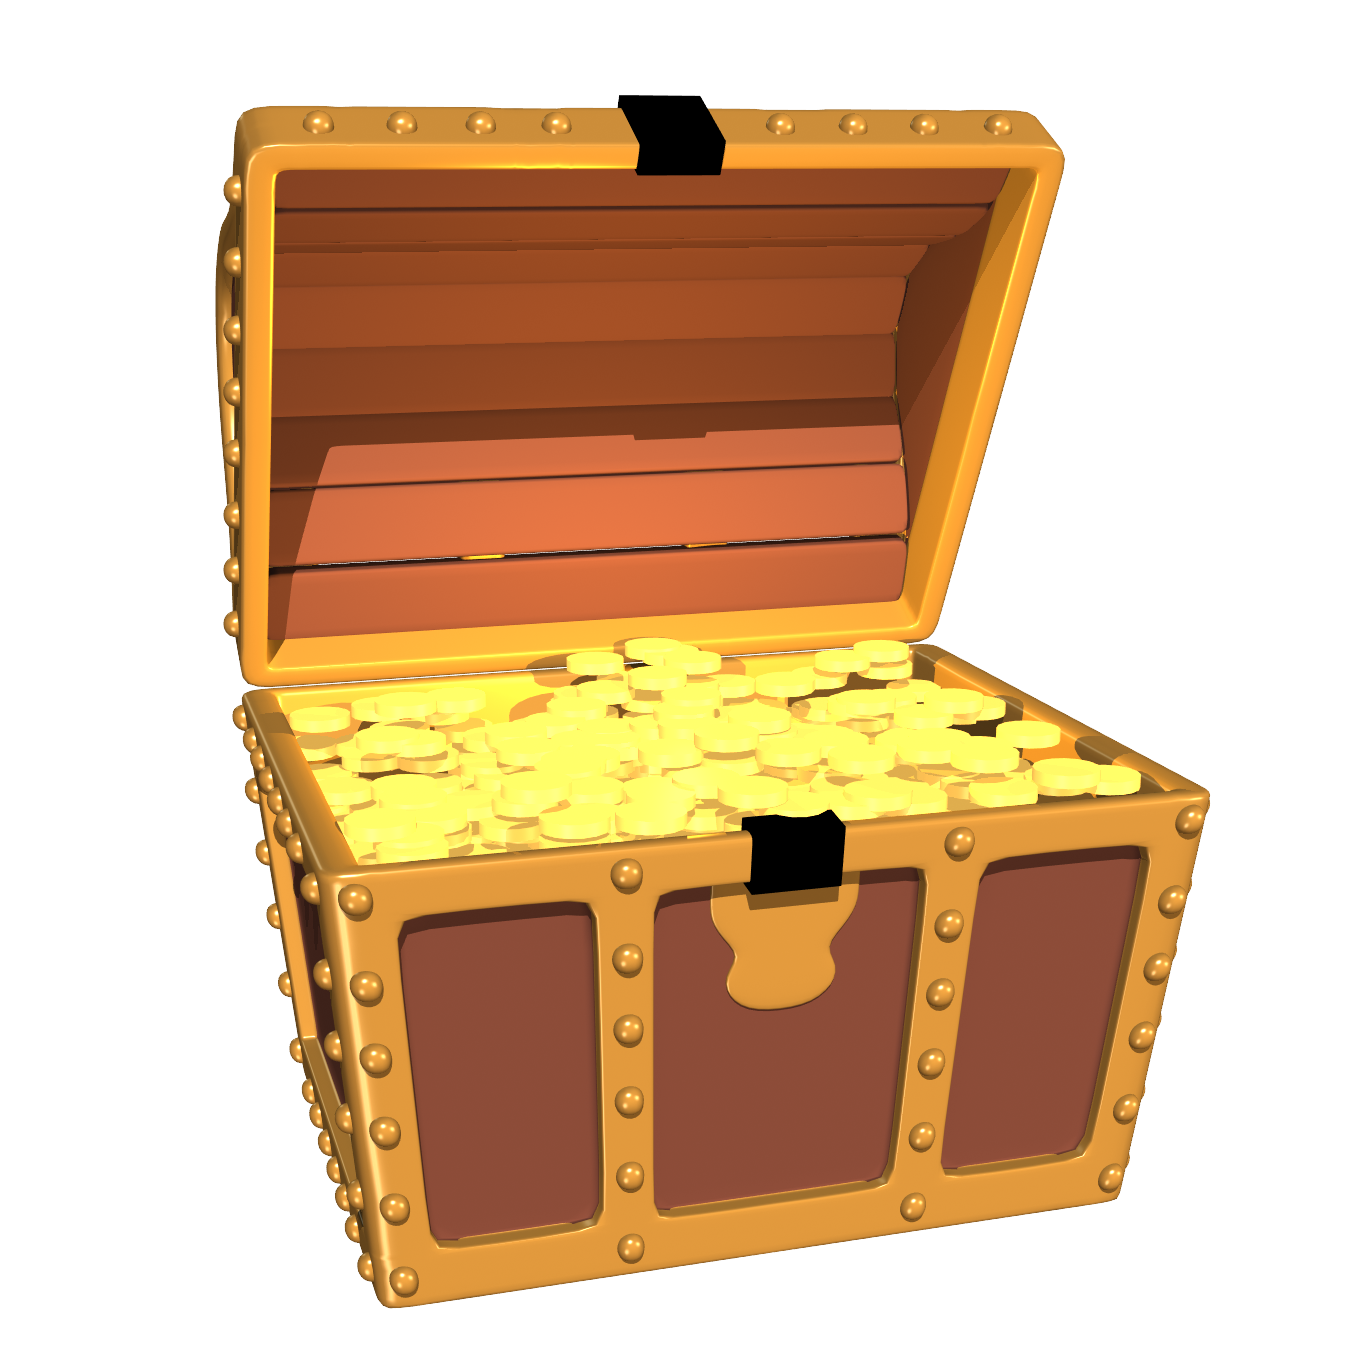 Treasure clipart animated. Chest confirmation visualization